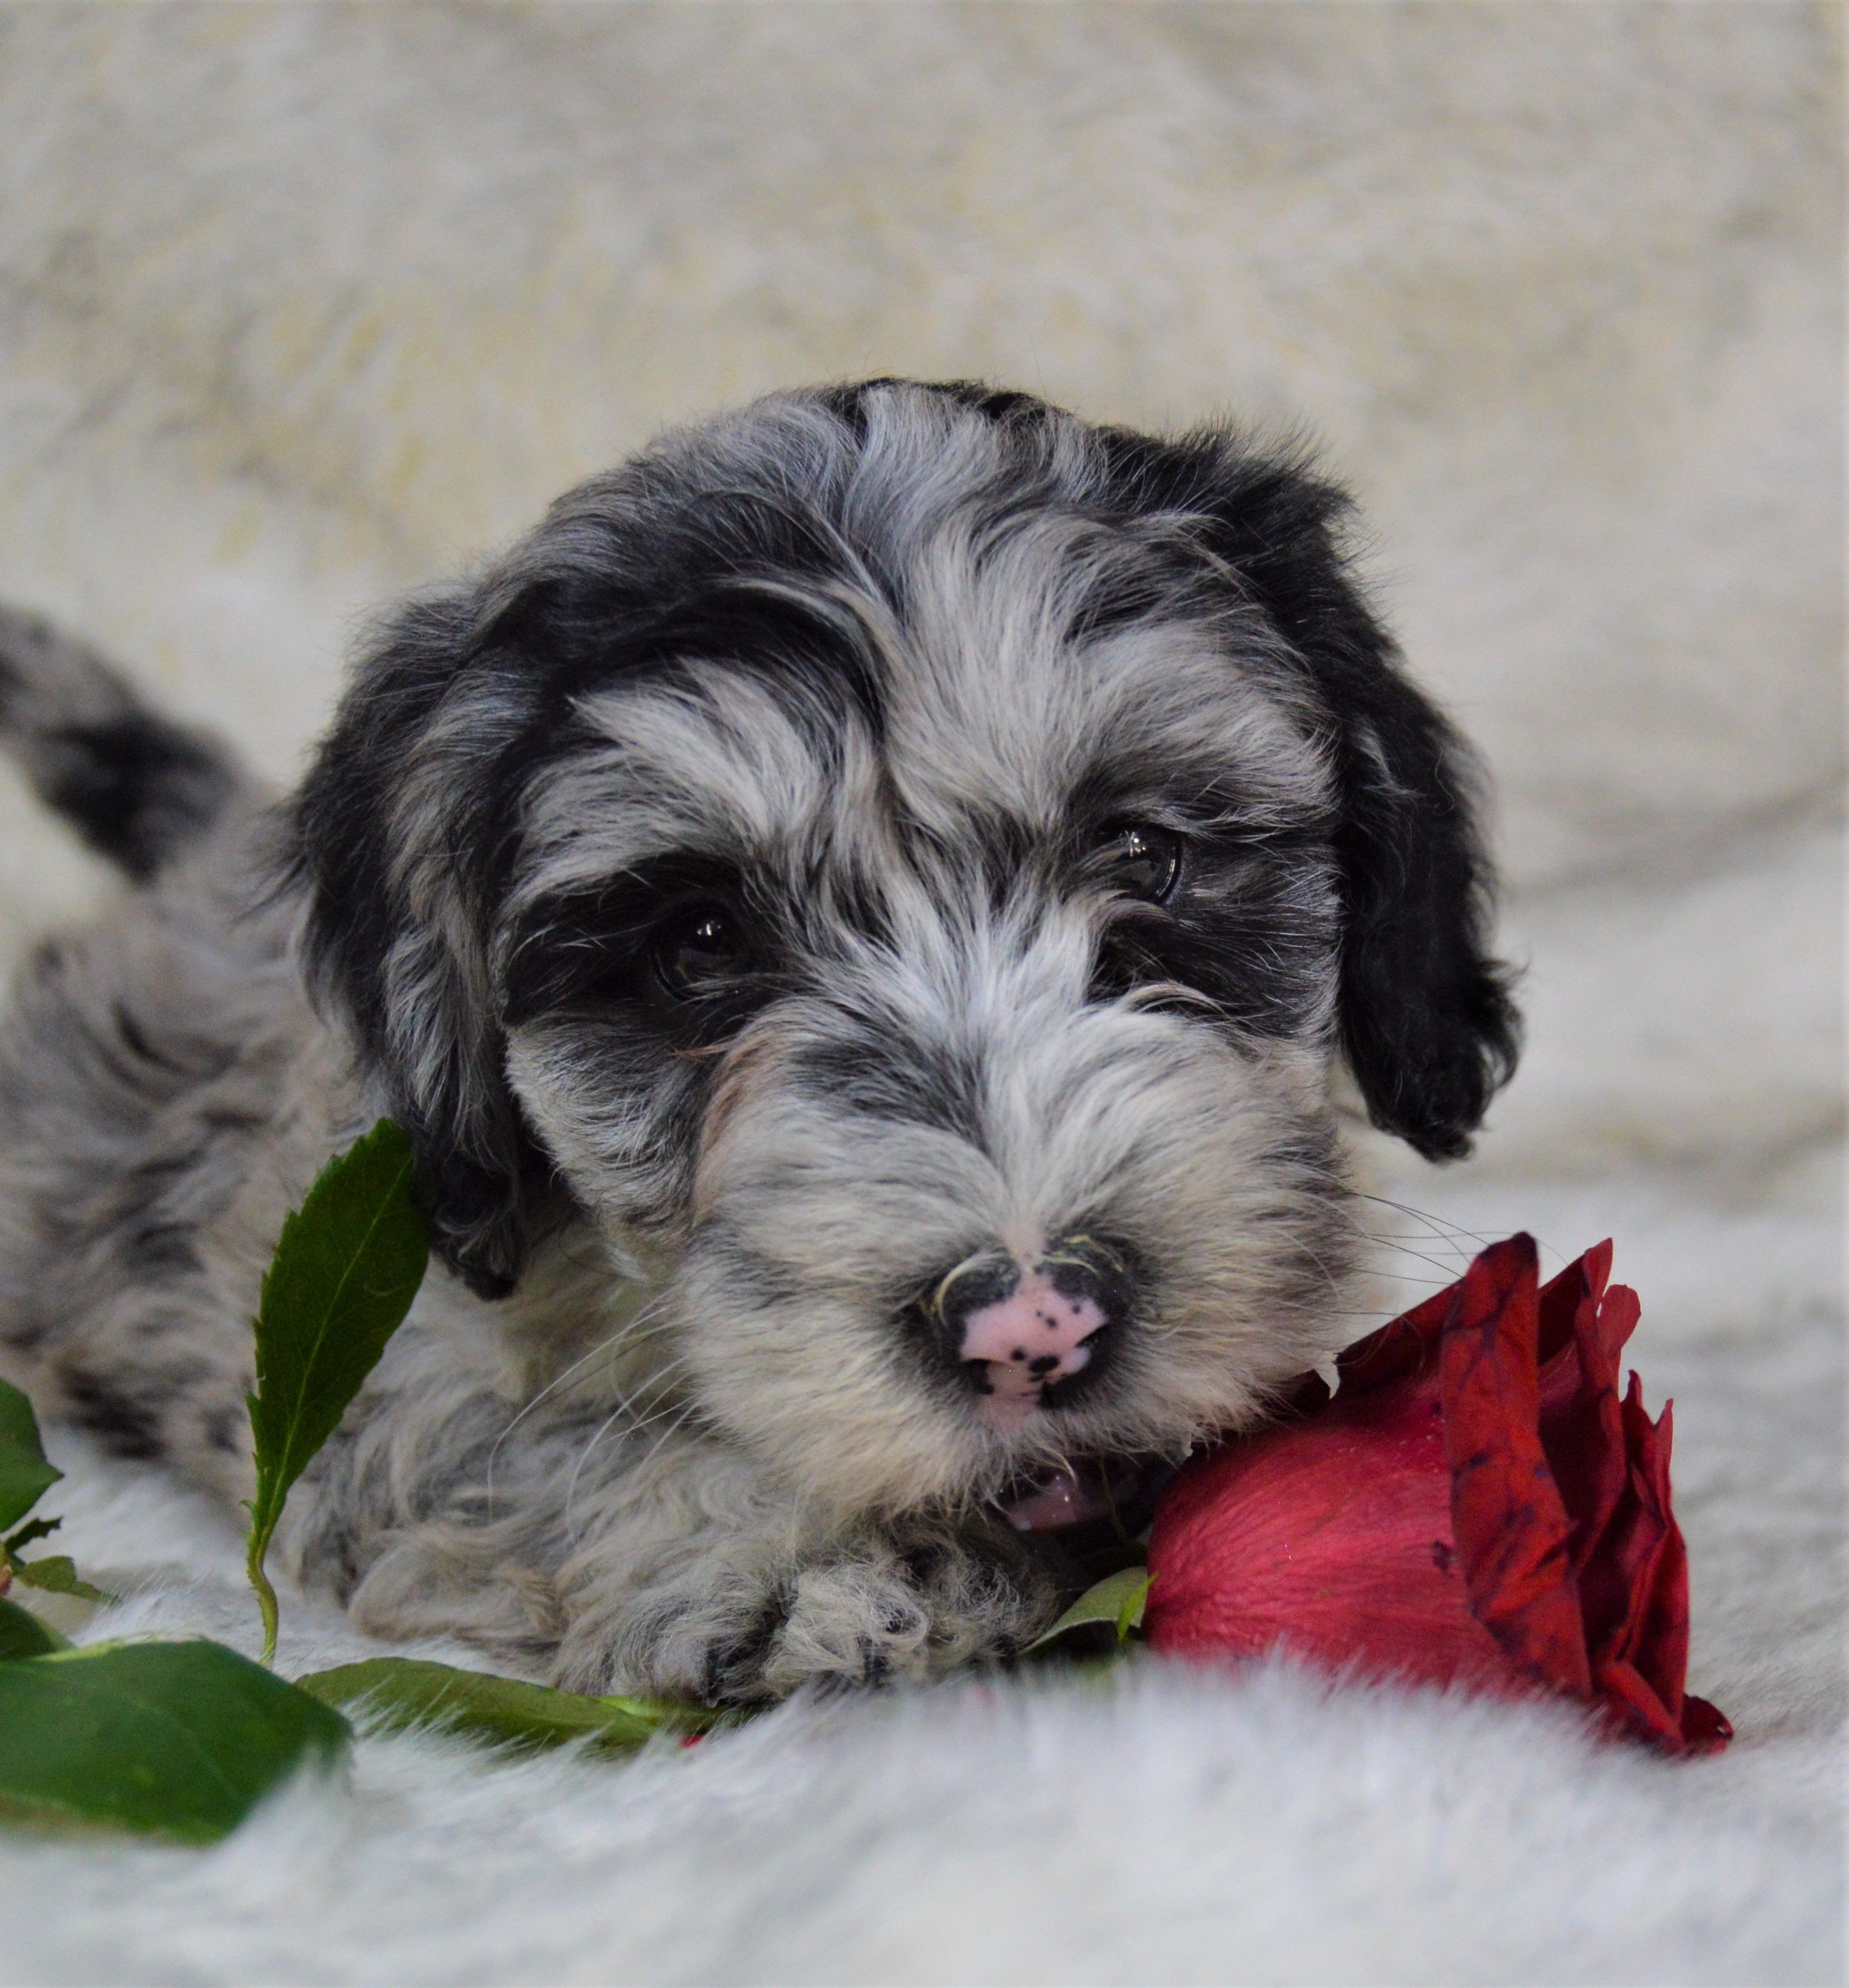 Playful Sweet Absolutelyadorable These Minisheepadoodle Pups Are Sure To Be The Cutest Pick From Th In 2020 Sheepadoodle Puppy Dog Friends Sheepadoodle